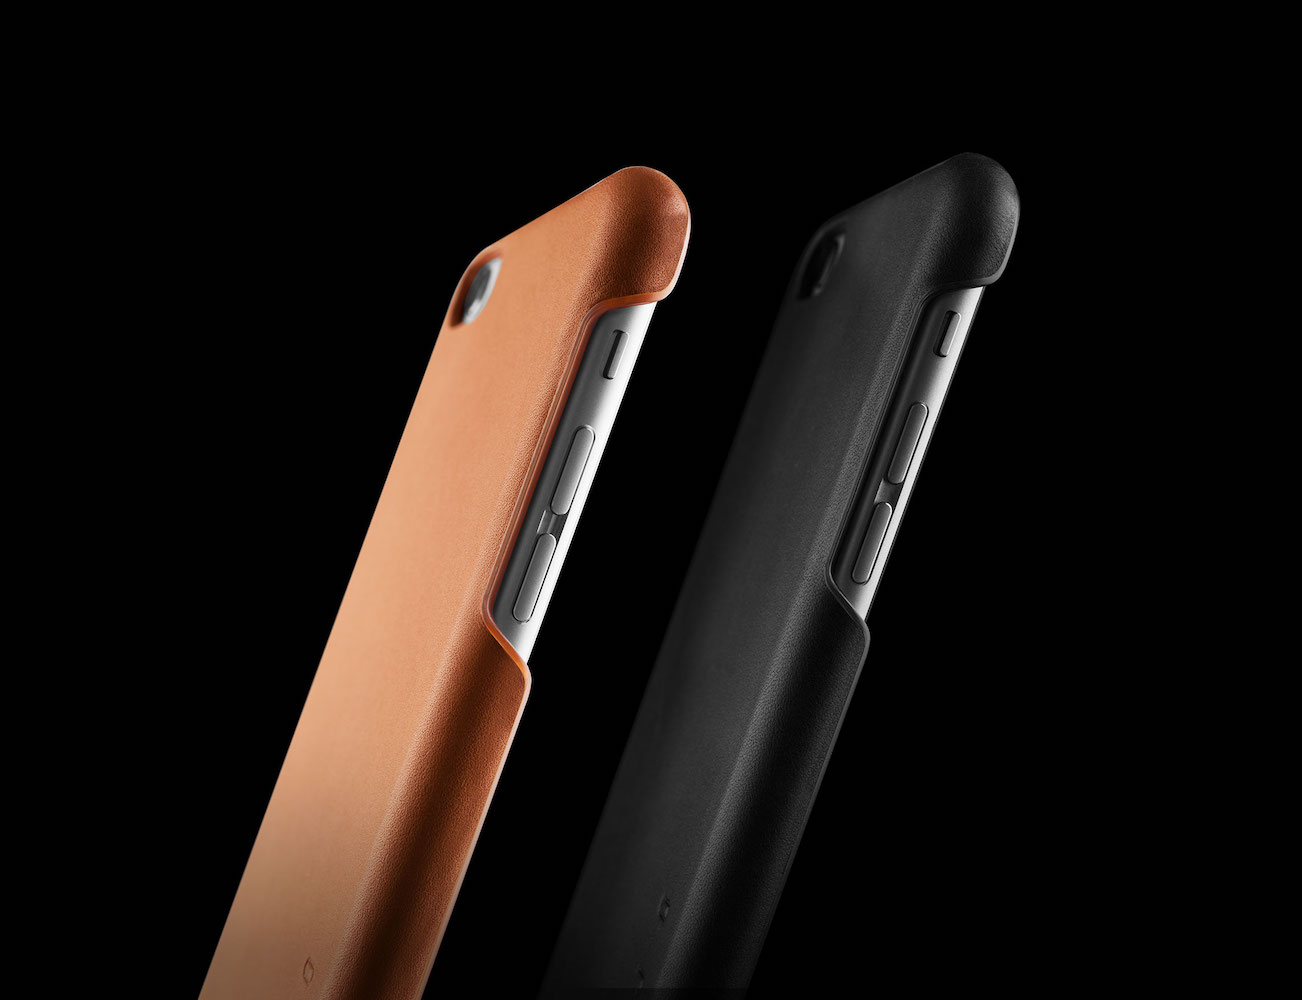 Leather iPhone 6S and 6S Plus Case by Mujjo